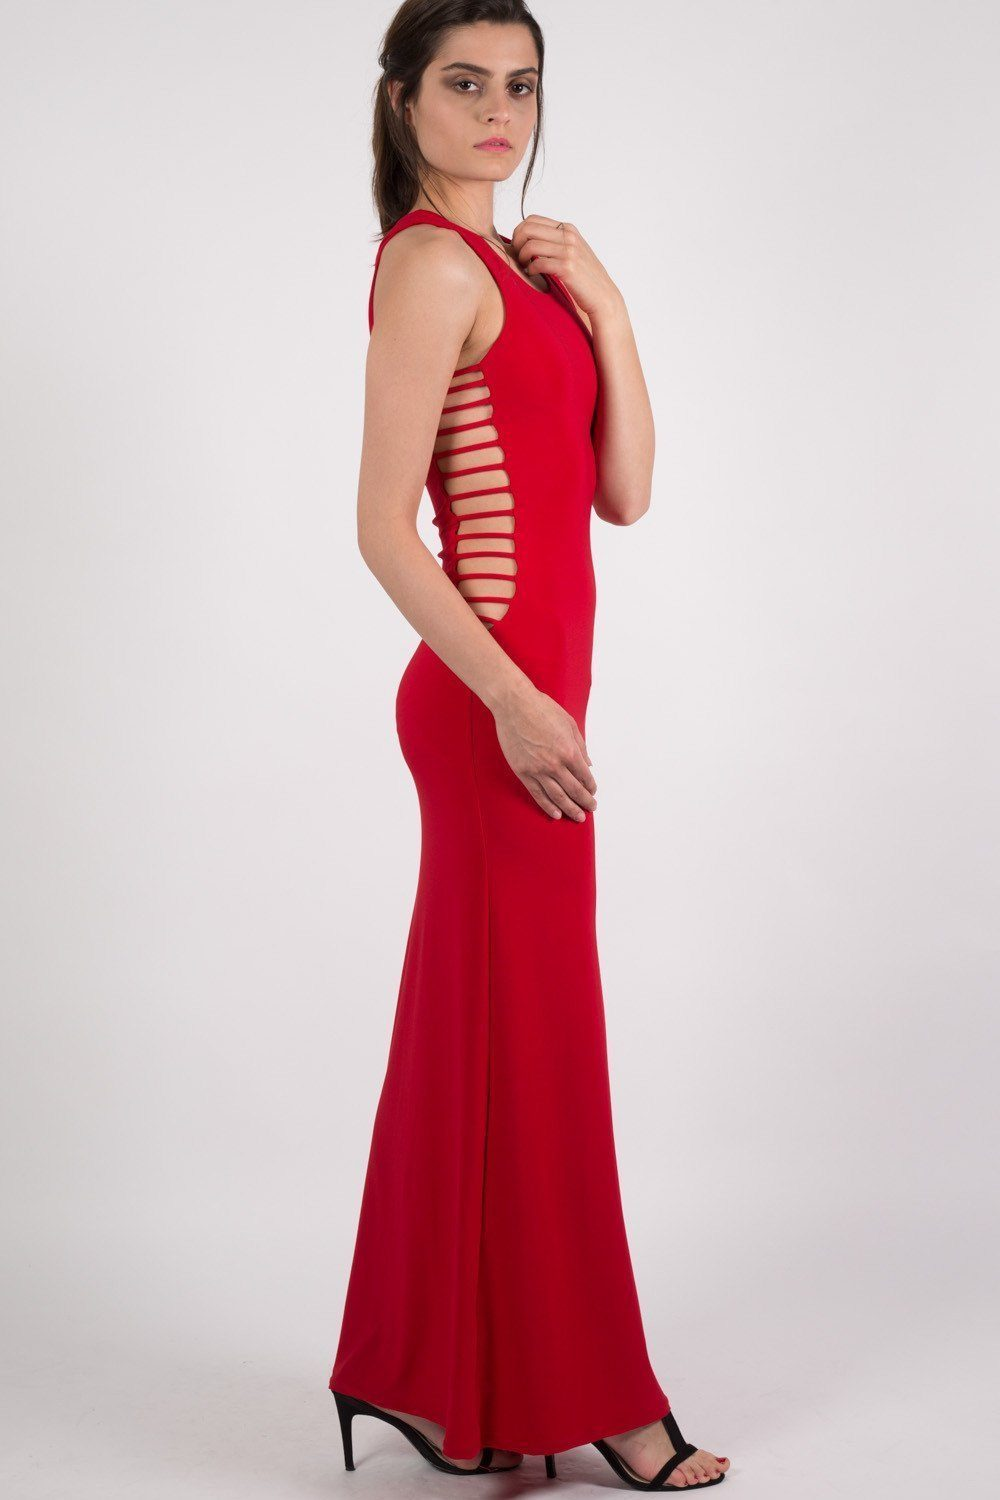 Cut Out Sides Maxi Dress in Red 0